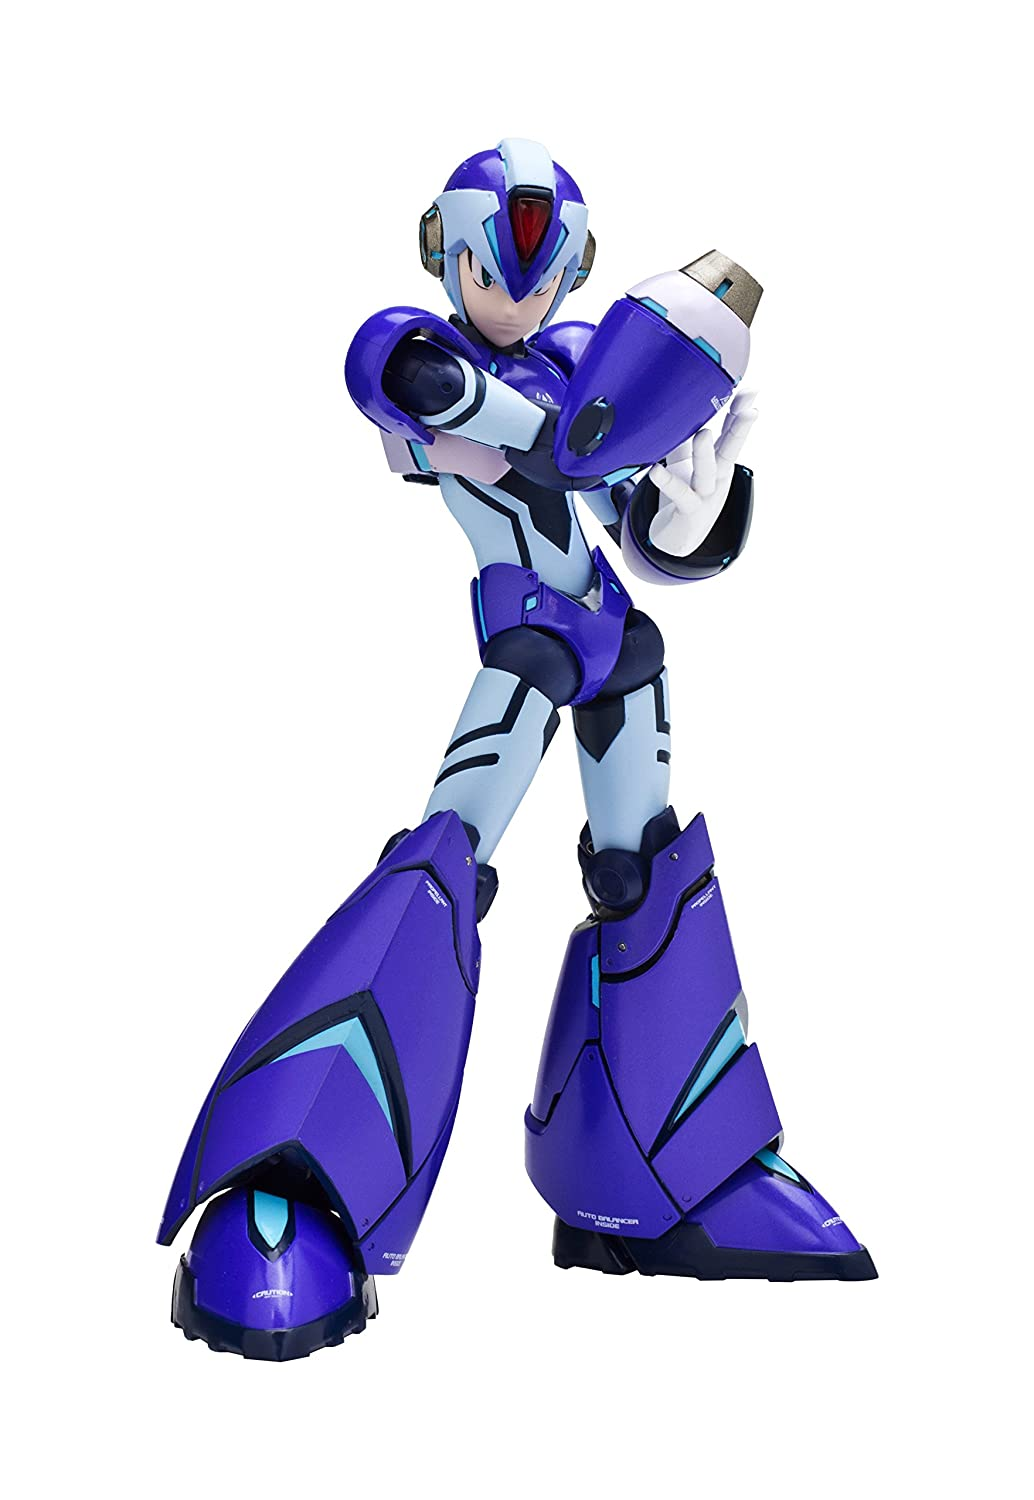 TruForce Collectibles Designer Series X Megaman X Action Figure sf002 ghost series military frank kathy 1 6 soldier action figure model